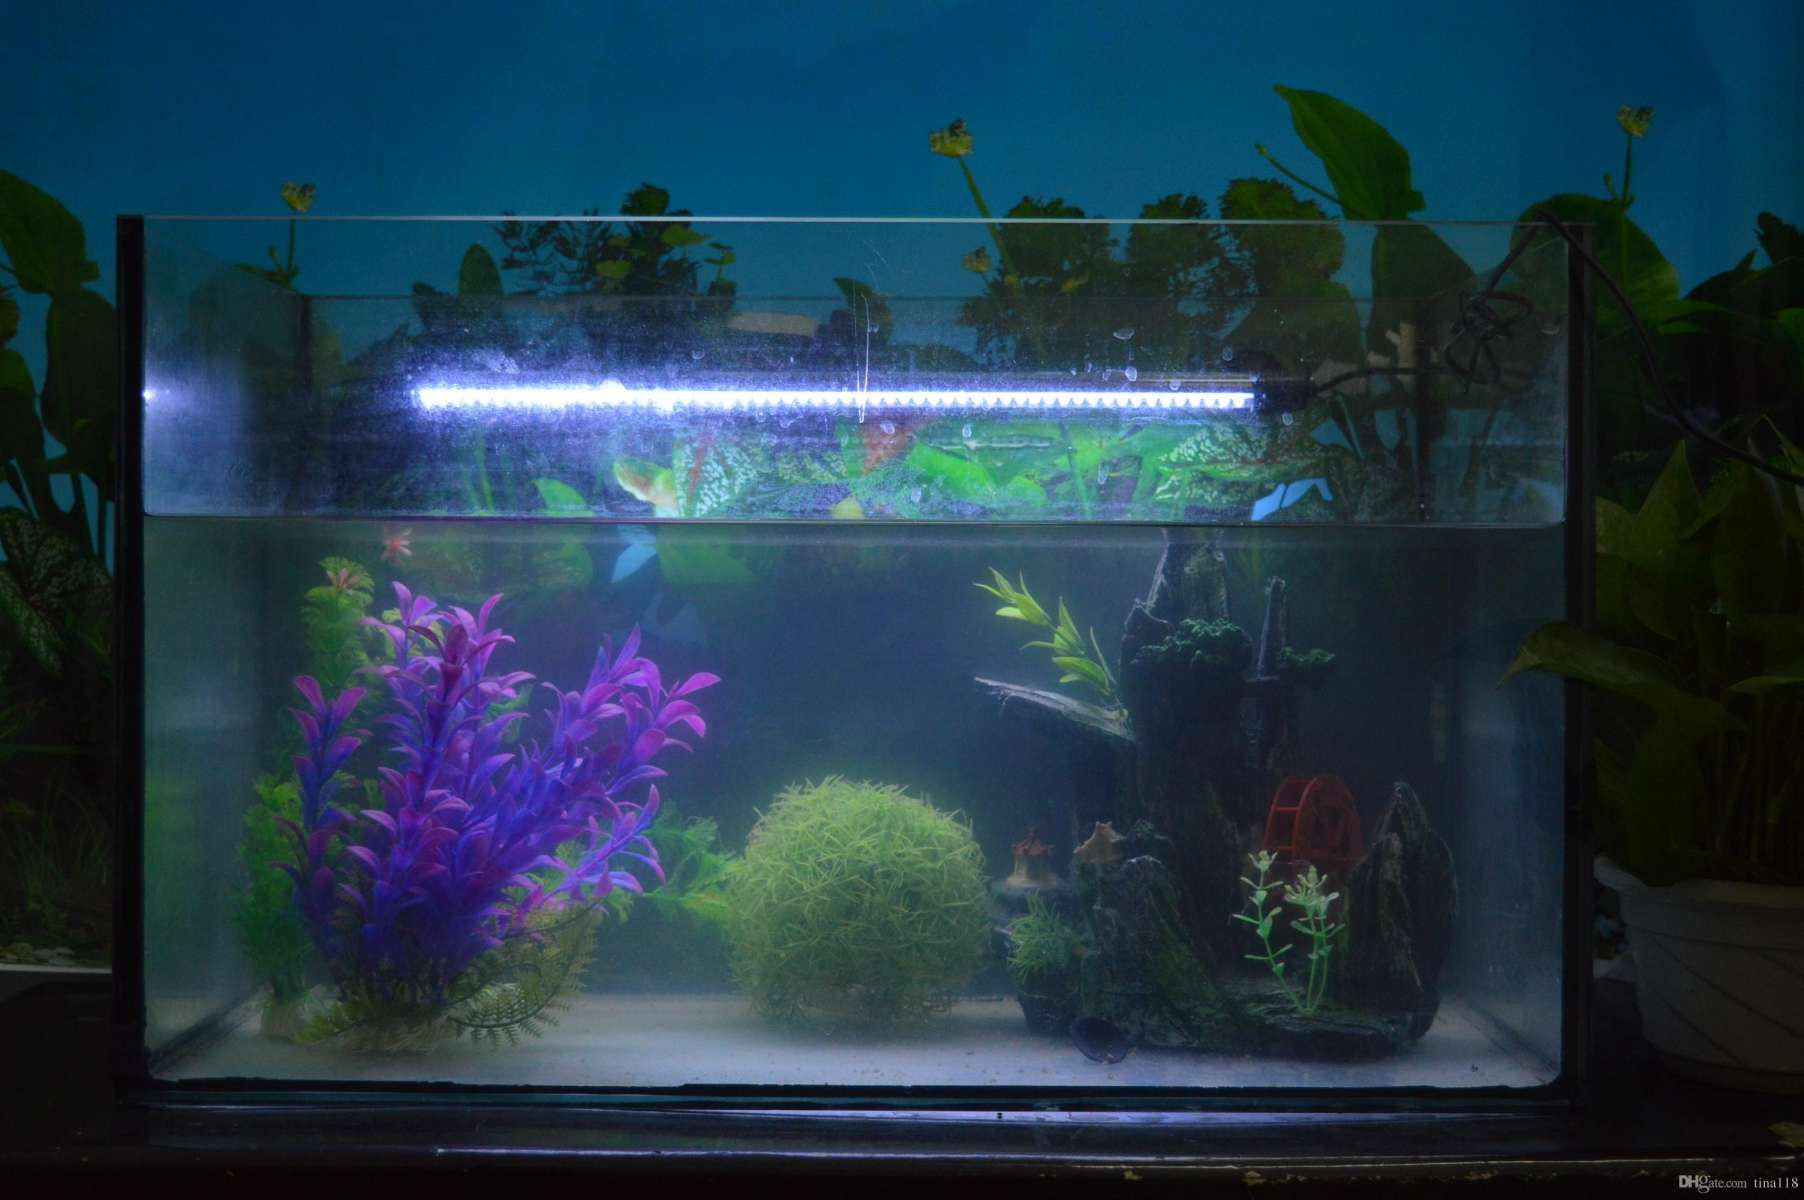 Fish In Vase Of Led Fishing Lights Fresh before New Hanging Lights Outdoor Regarding Led Fishing Lights Beautiful From Underwater Lights for Fish Tanks Beautiful Vases Waterproof Vase